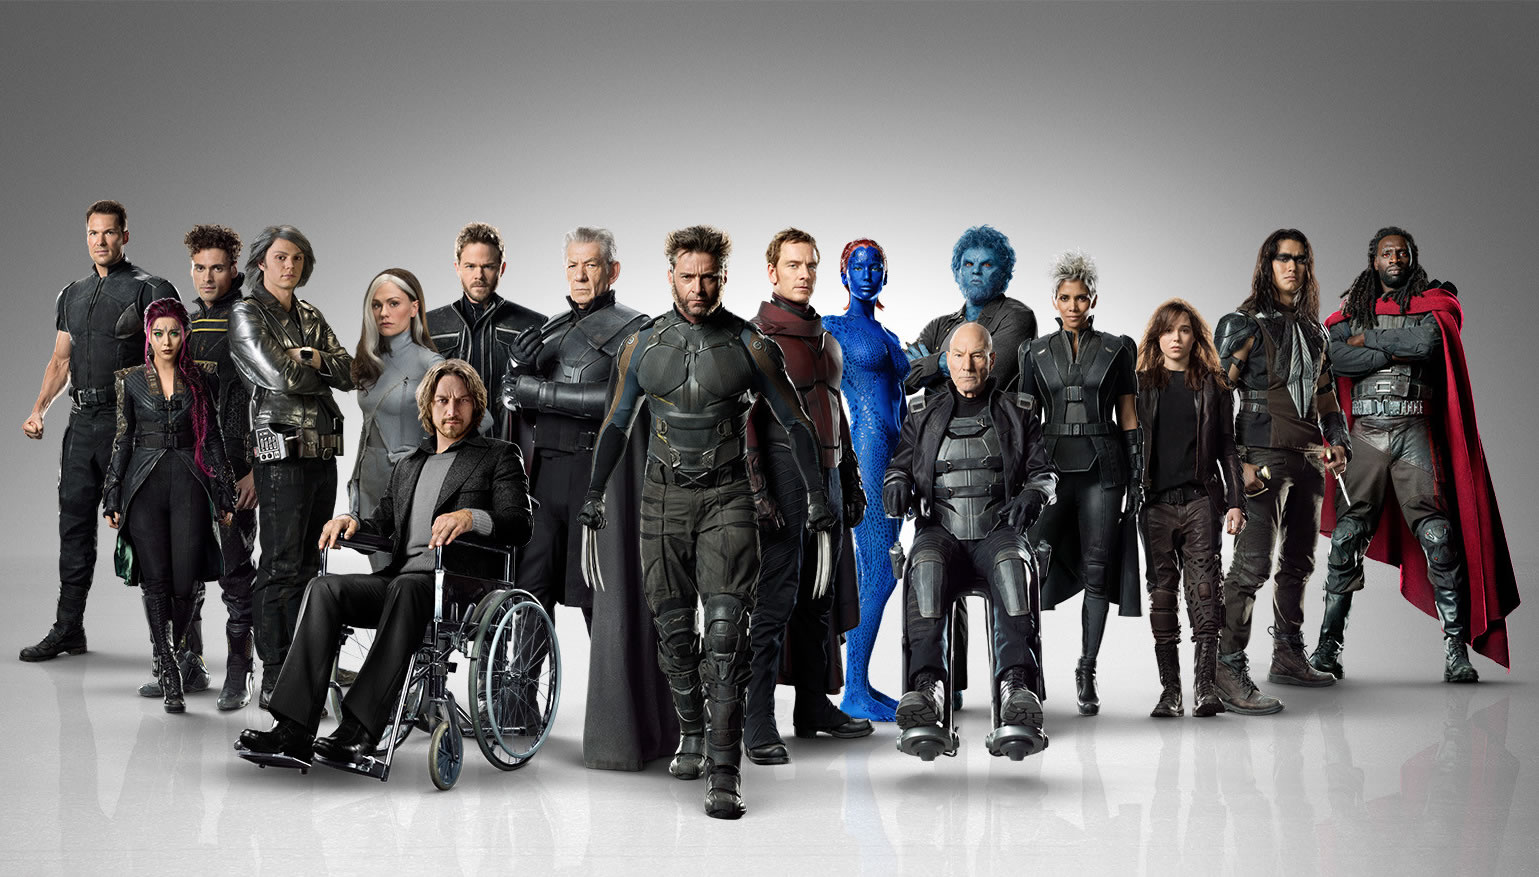 Look at these gorgeous people. Look at them. It's like a rainbow of mutants with Wolverine at the center.